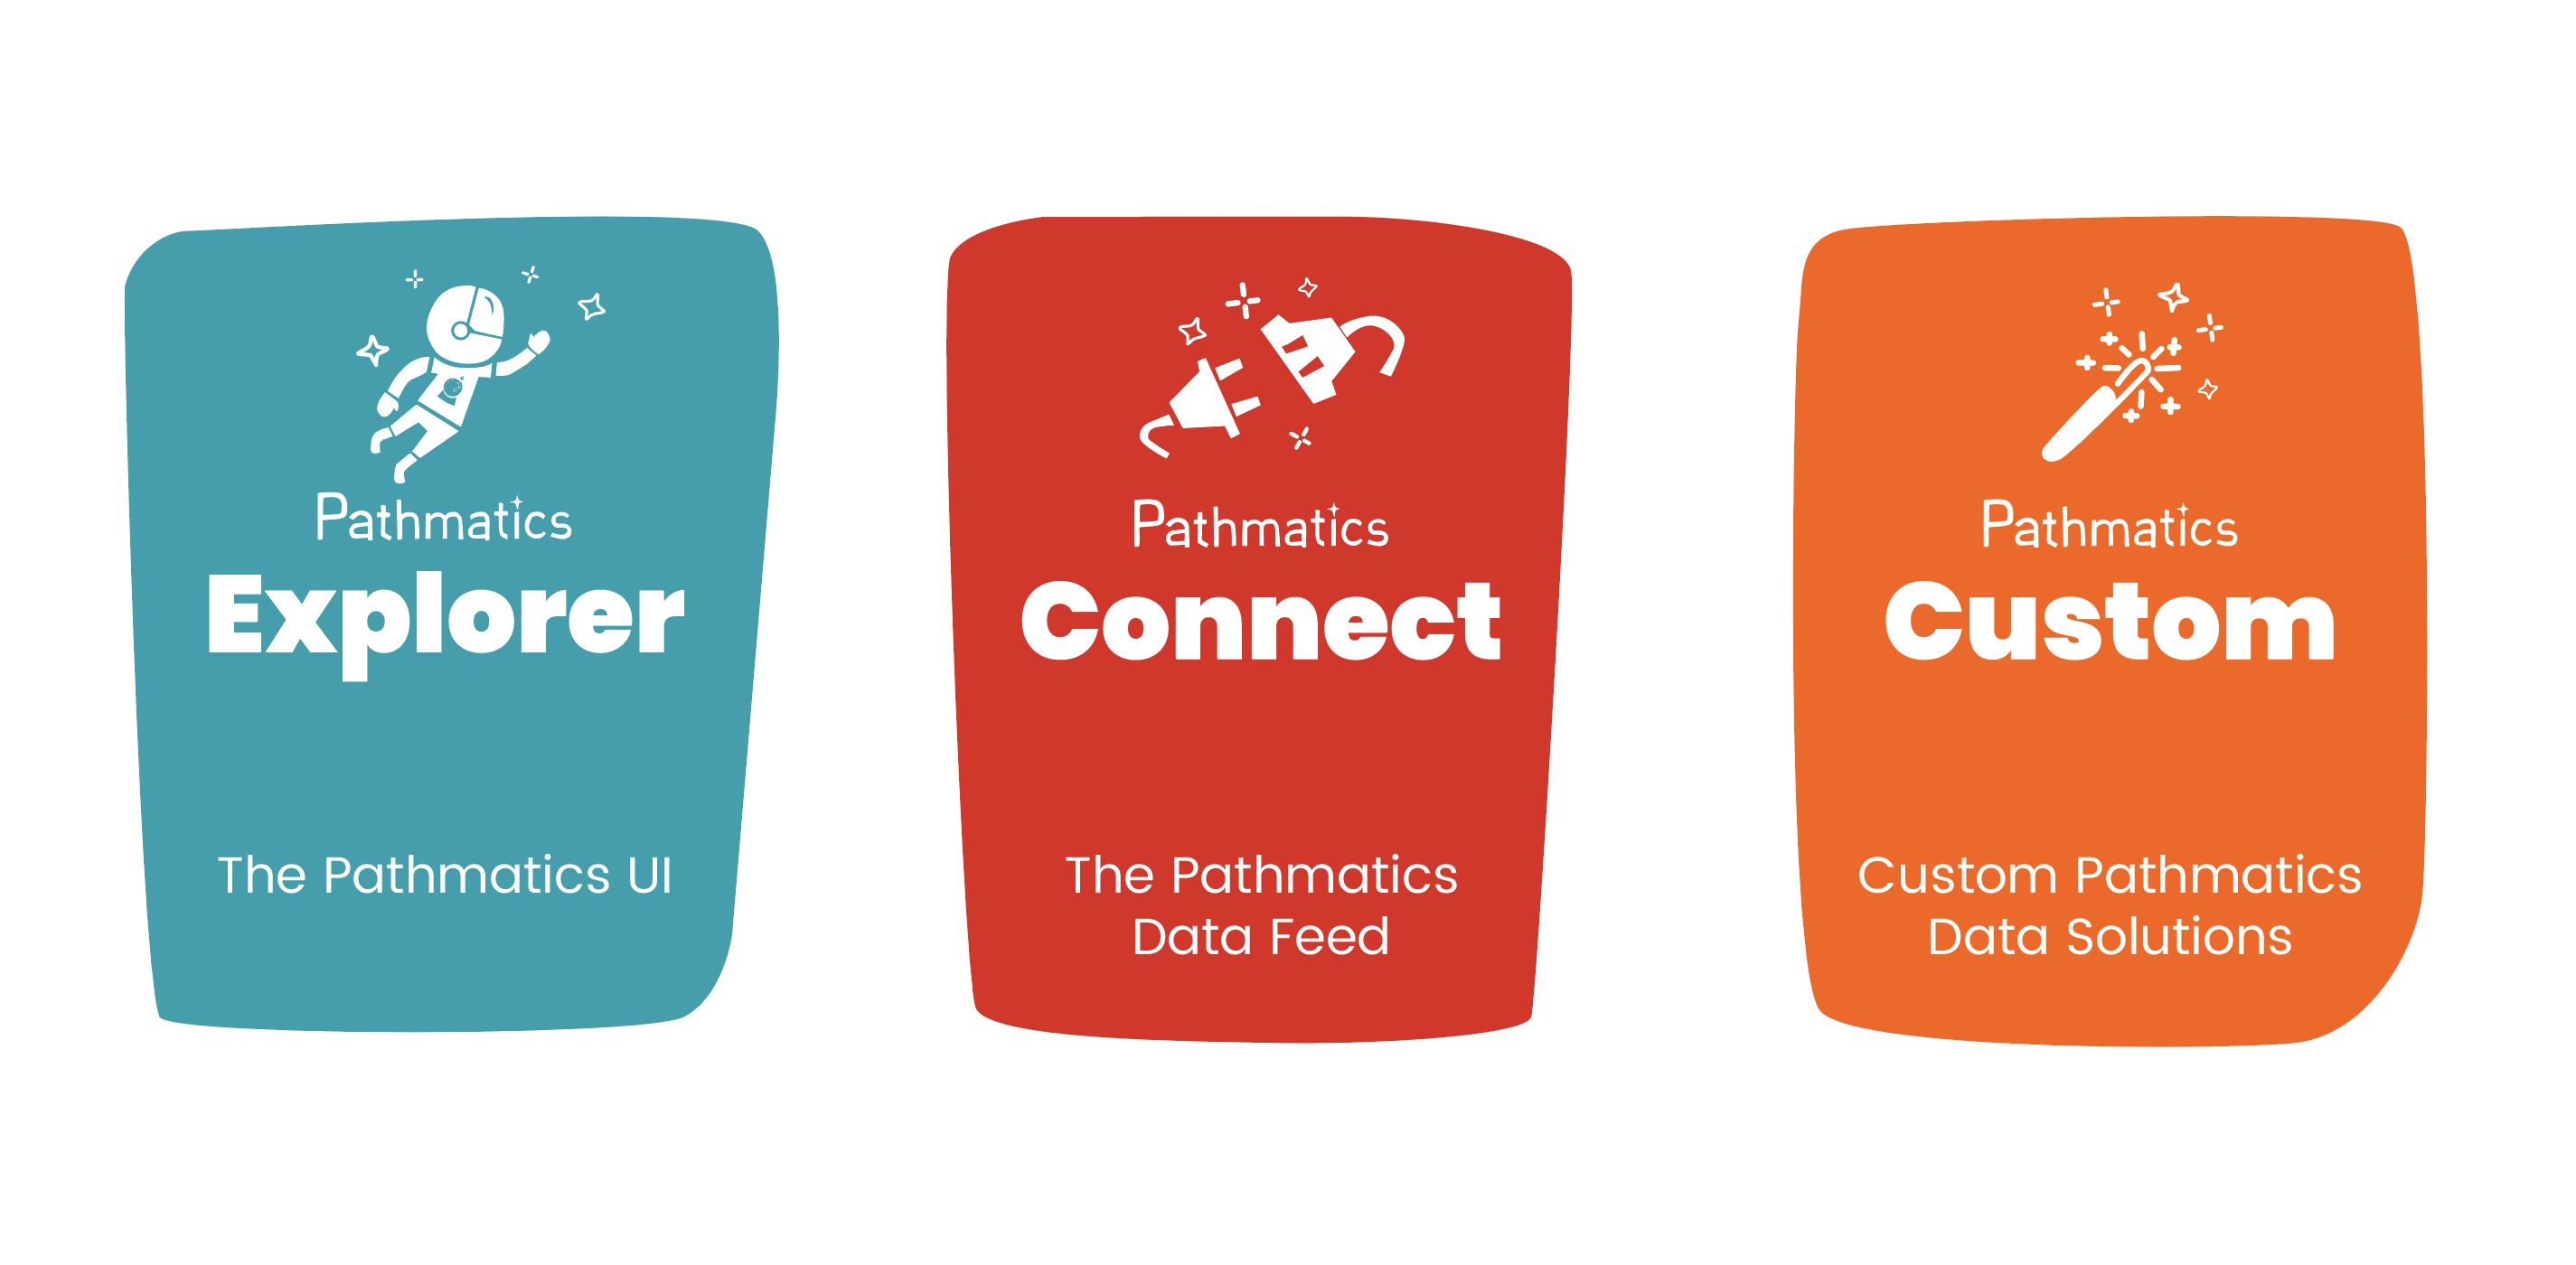 Pathmatics offers three unique solutions to give you exactly what you need from our data,